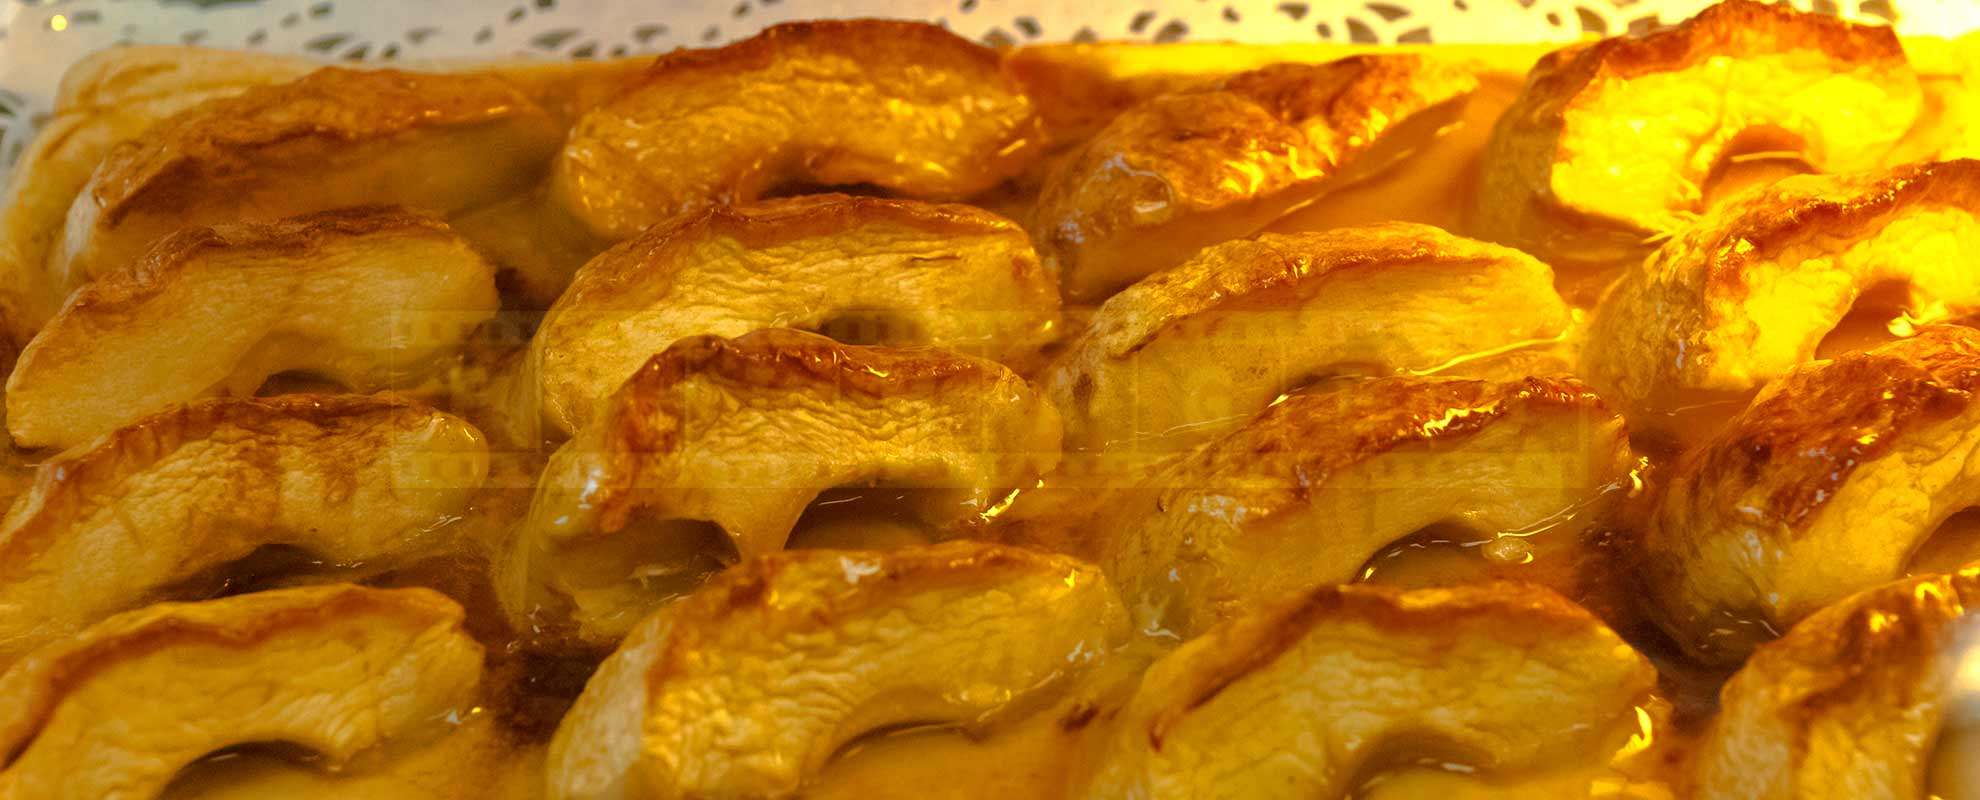 Glazed apple tart - tasty Provence dessert